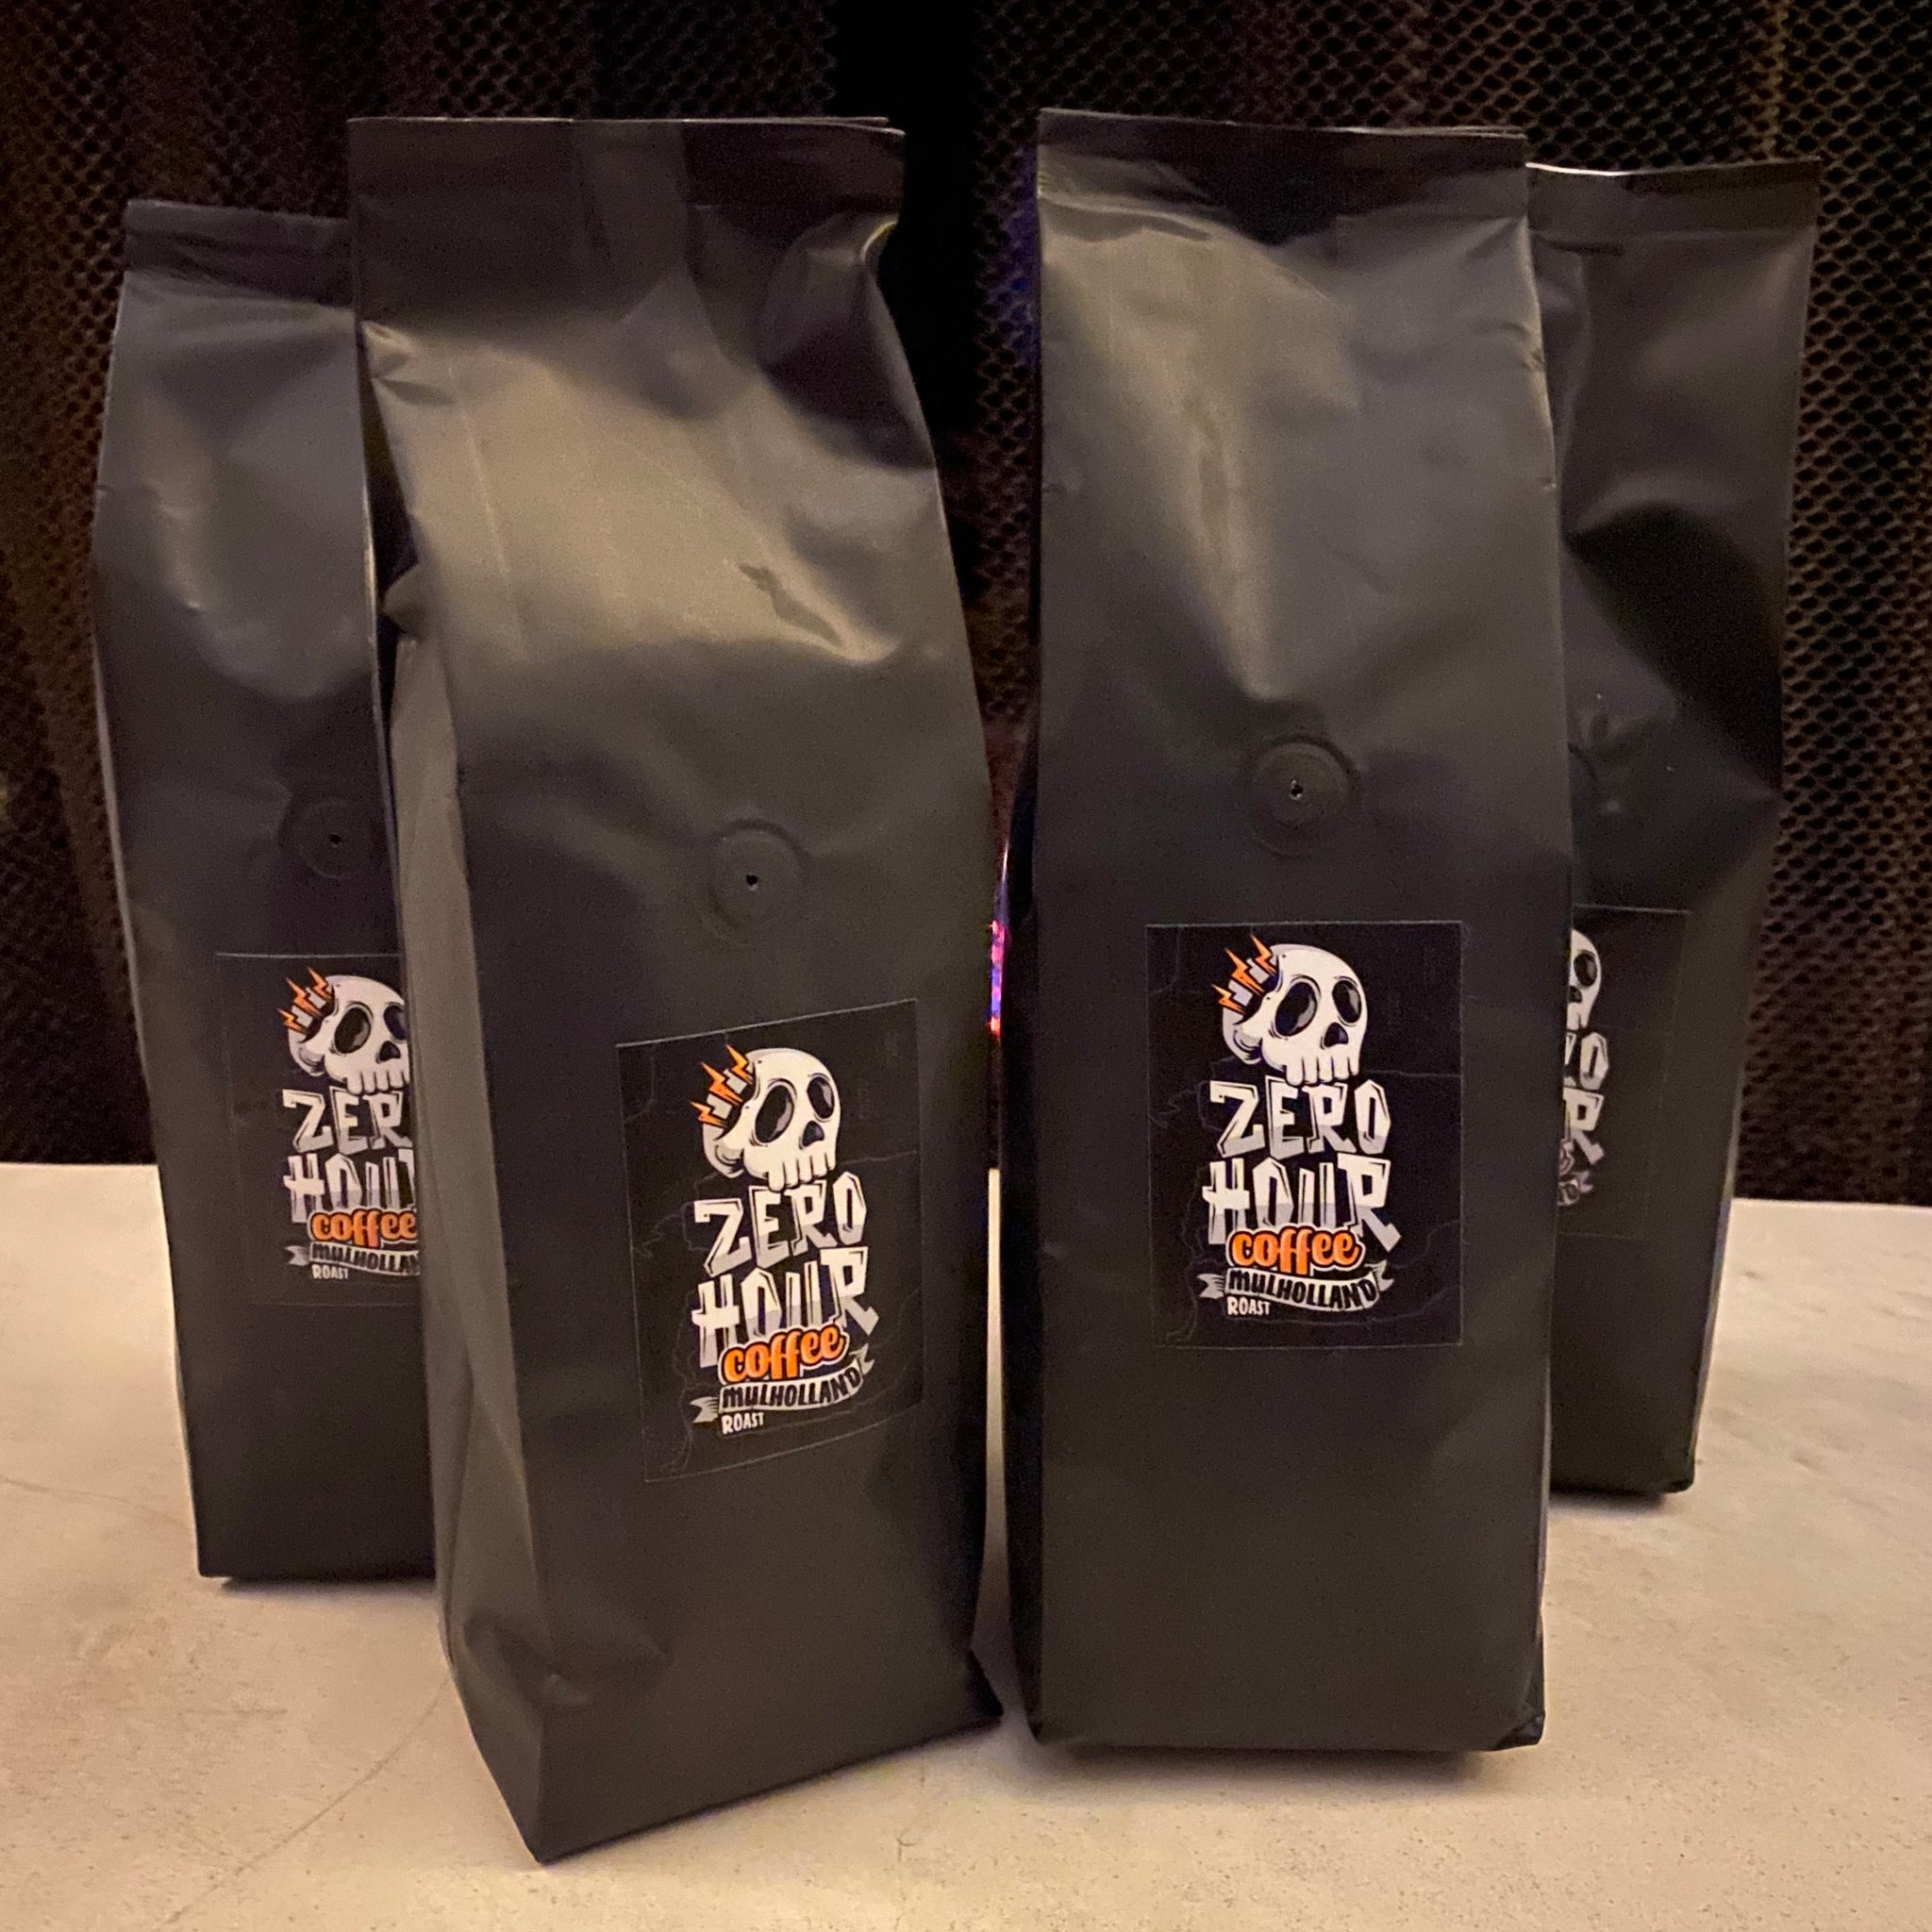 Mulholland Roast Coffee Biweekly Subscription